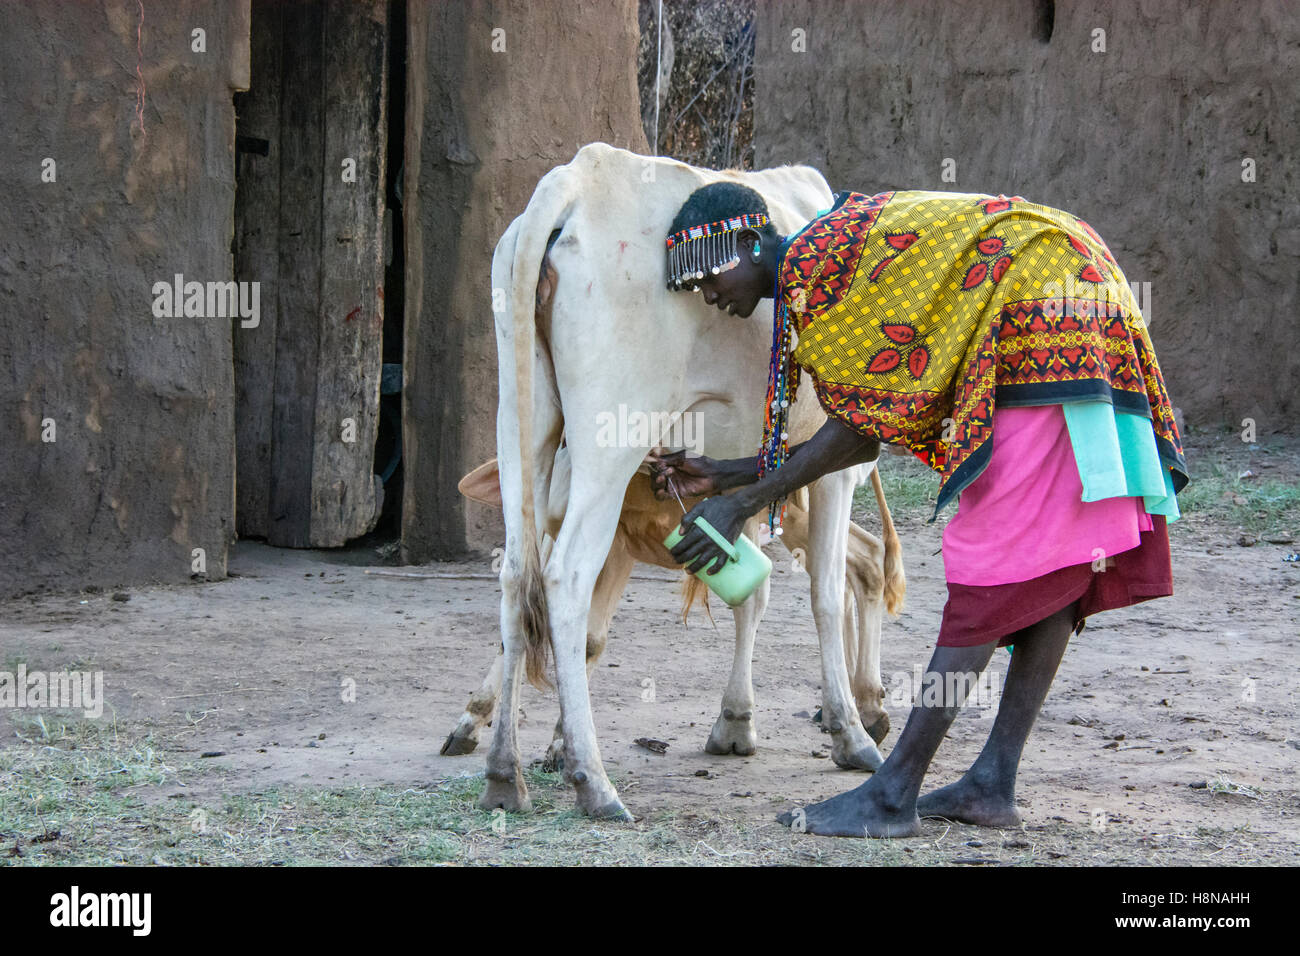 Maasai Woman milking a cow, wearing traditional attire, in a village near the Masai Mara National Park, Kenya, East Stock Photo